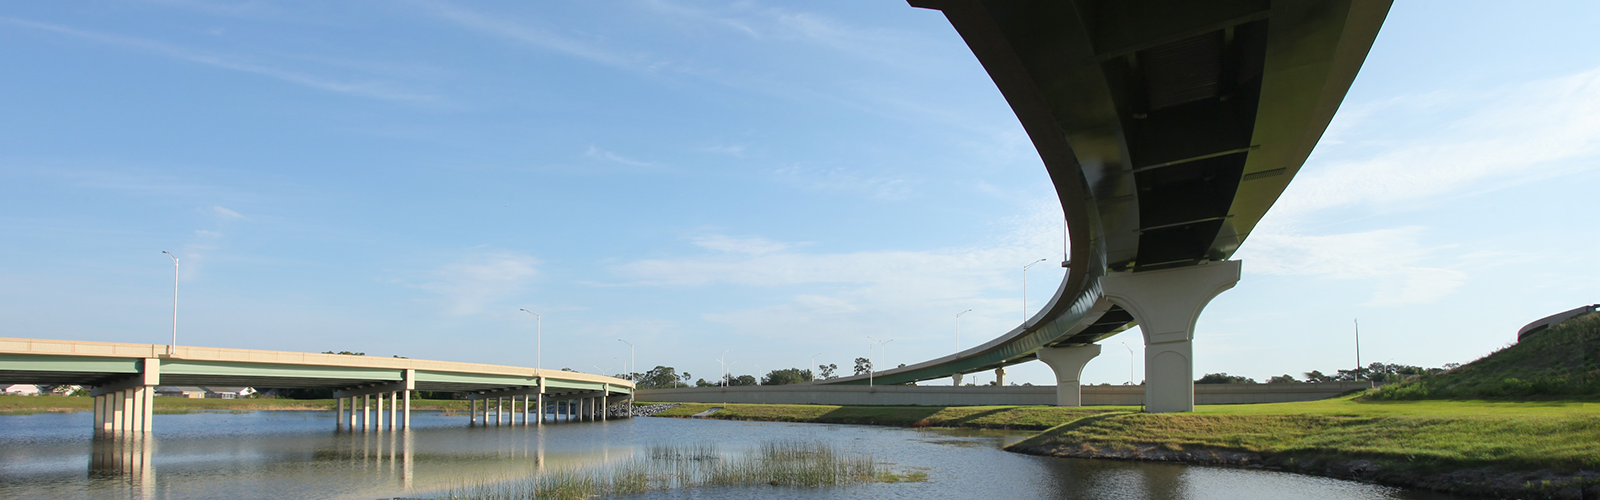 Central Florida Expressway toll road 414 bridges over lakes